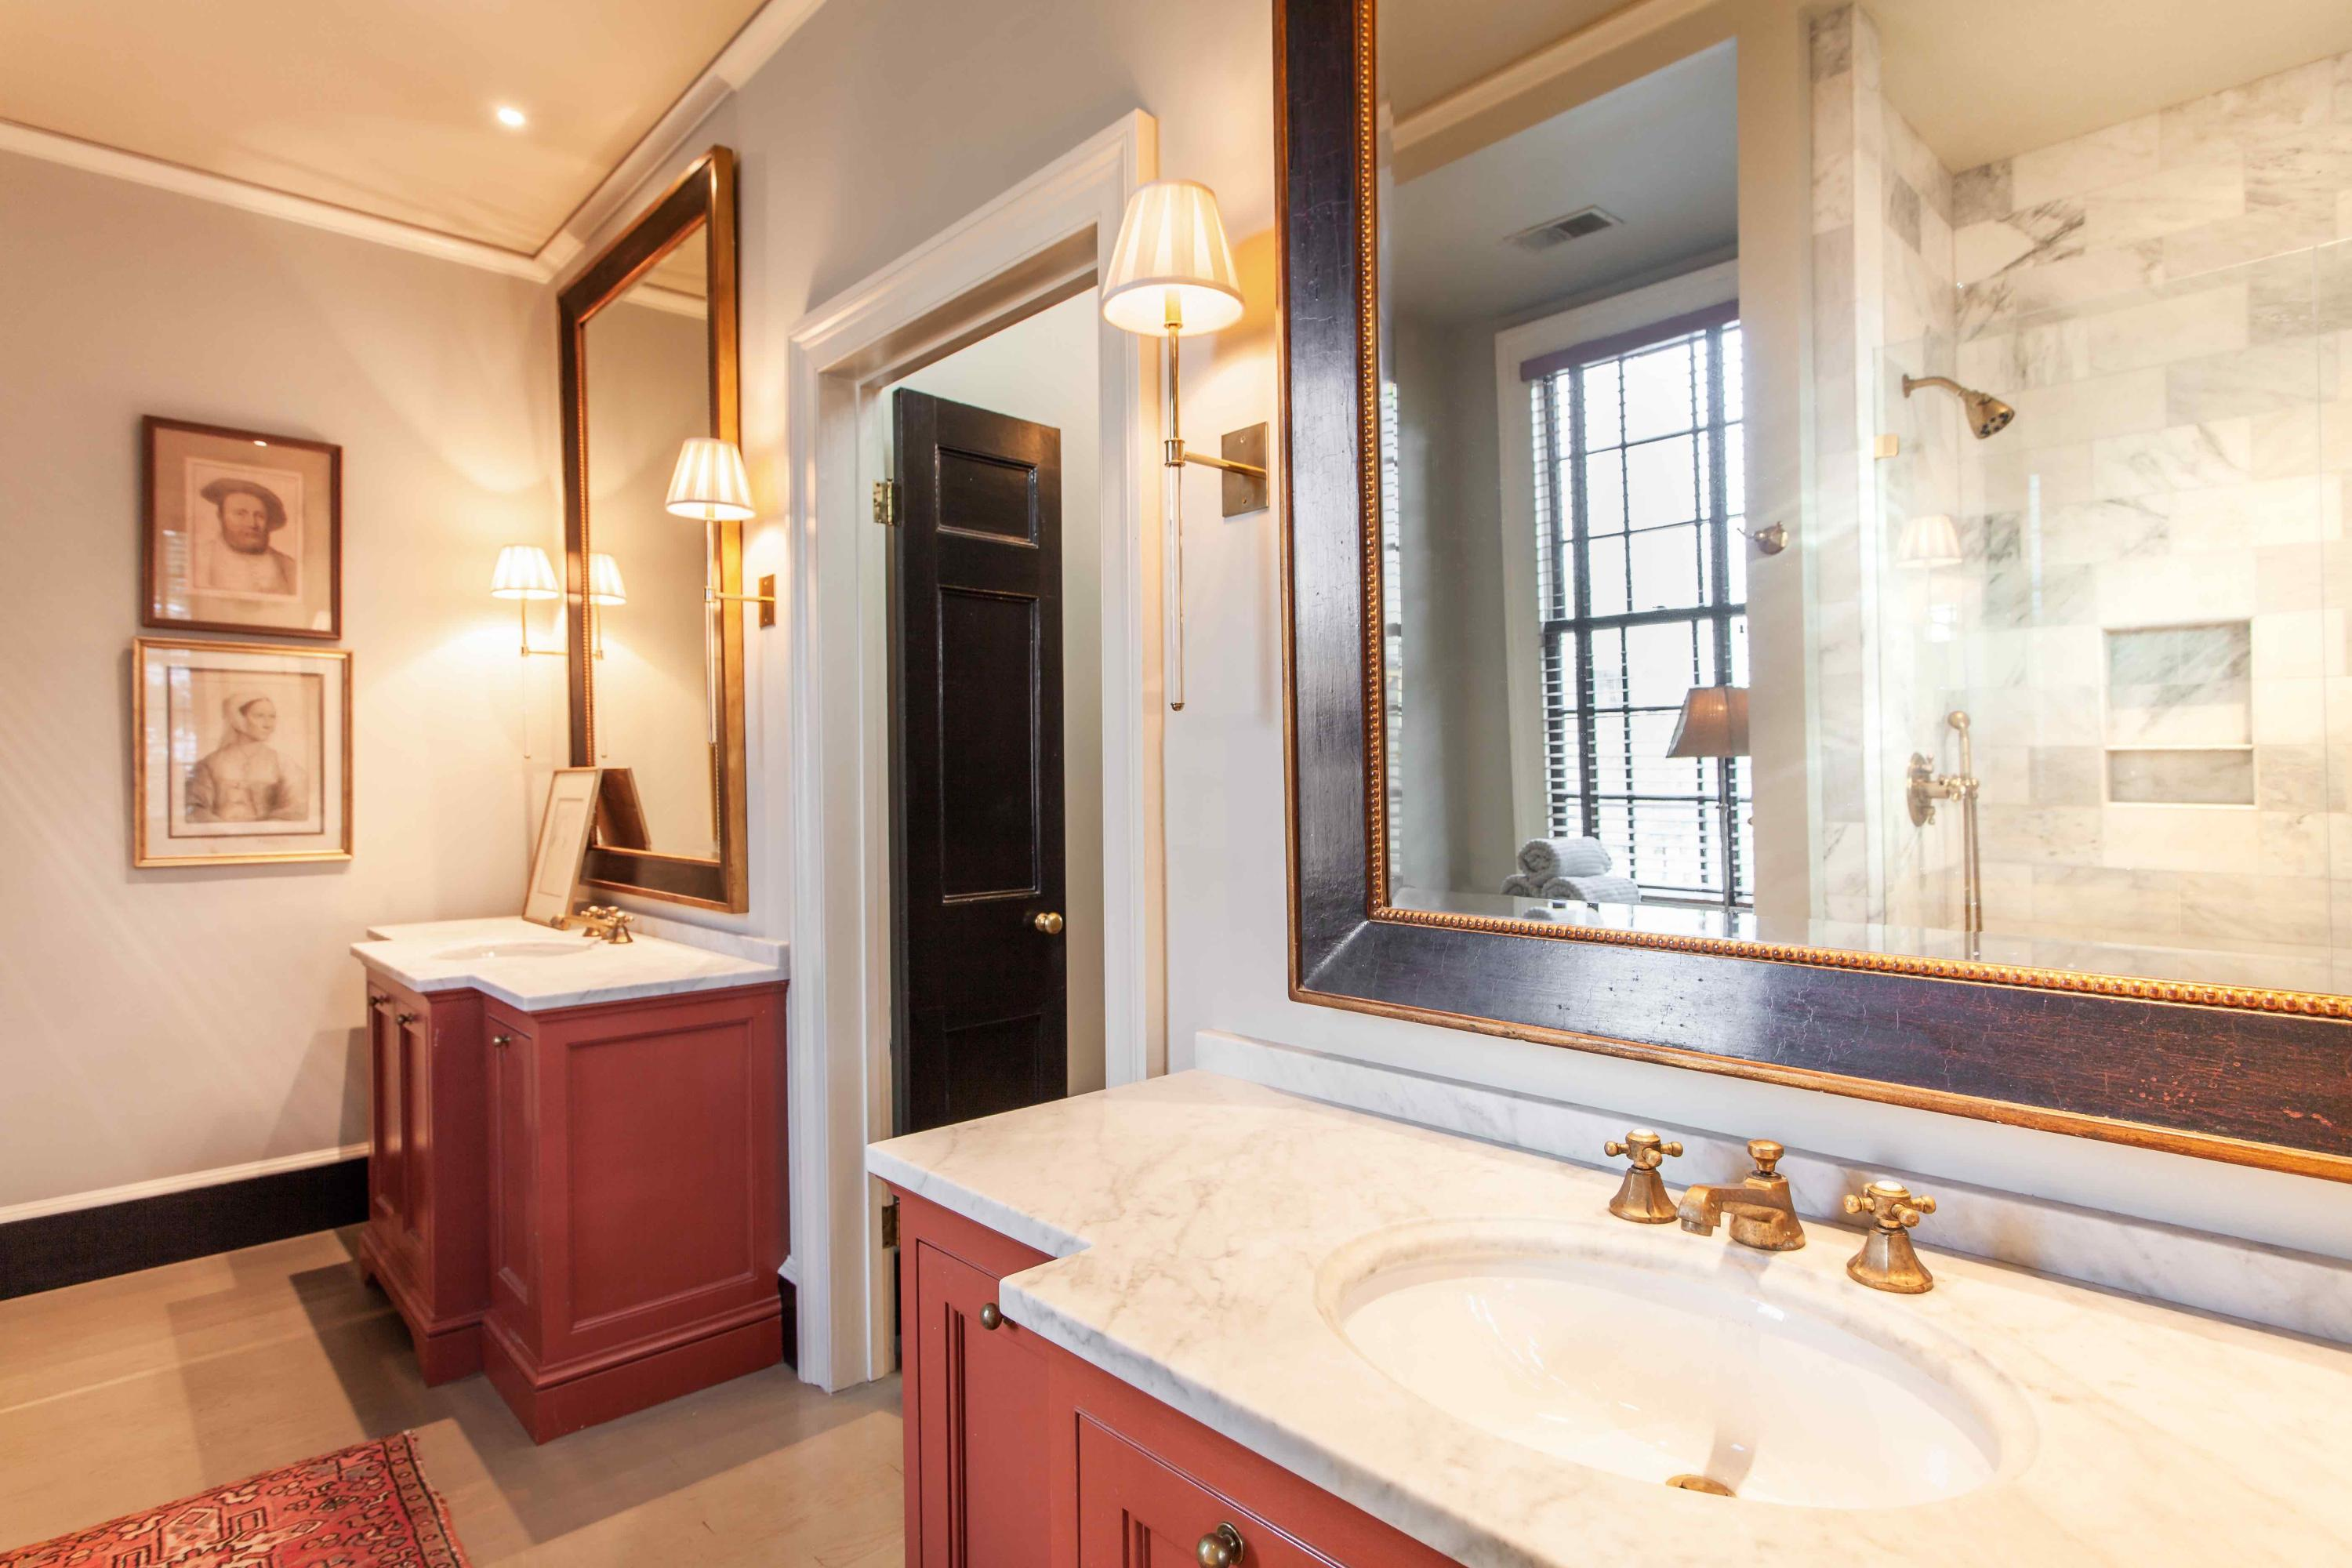 South of Broad Homes For Sale - 58 South Battery, Charleston, SC - 30